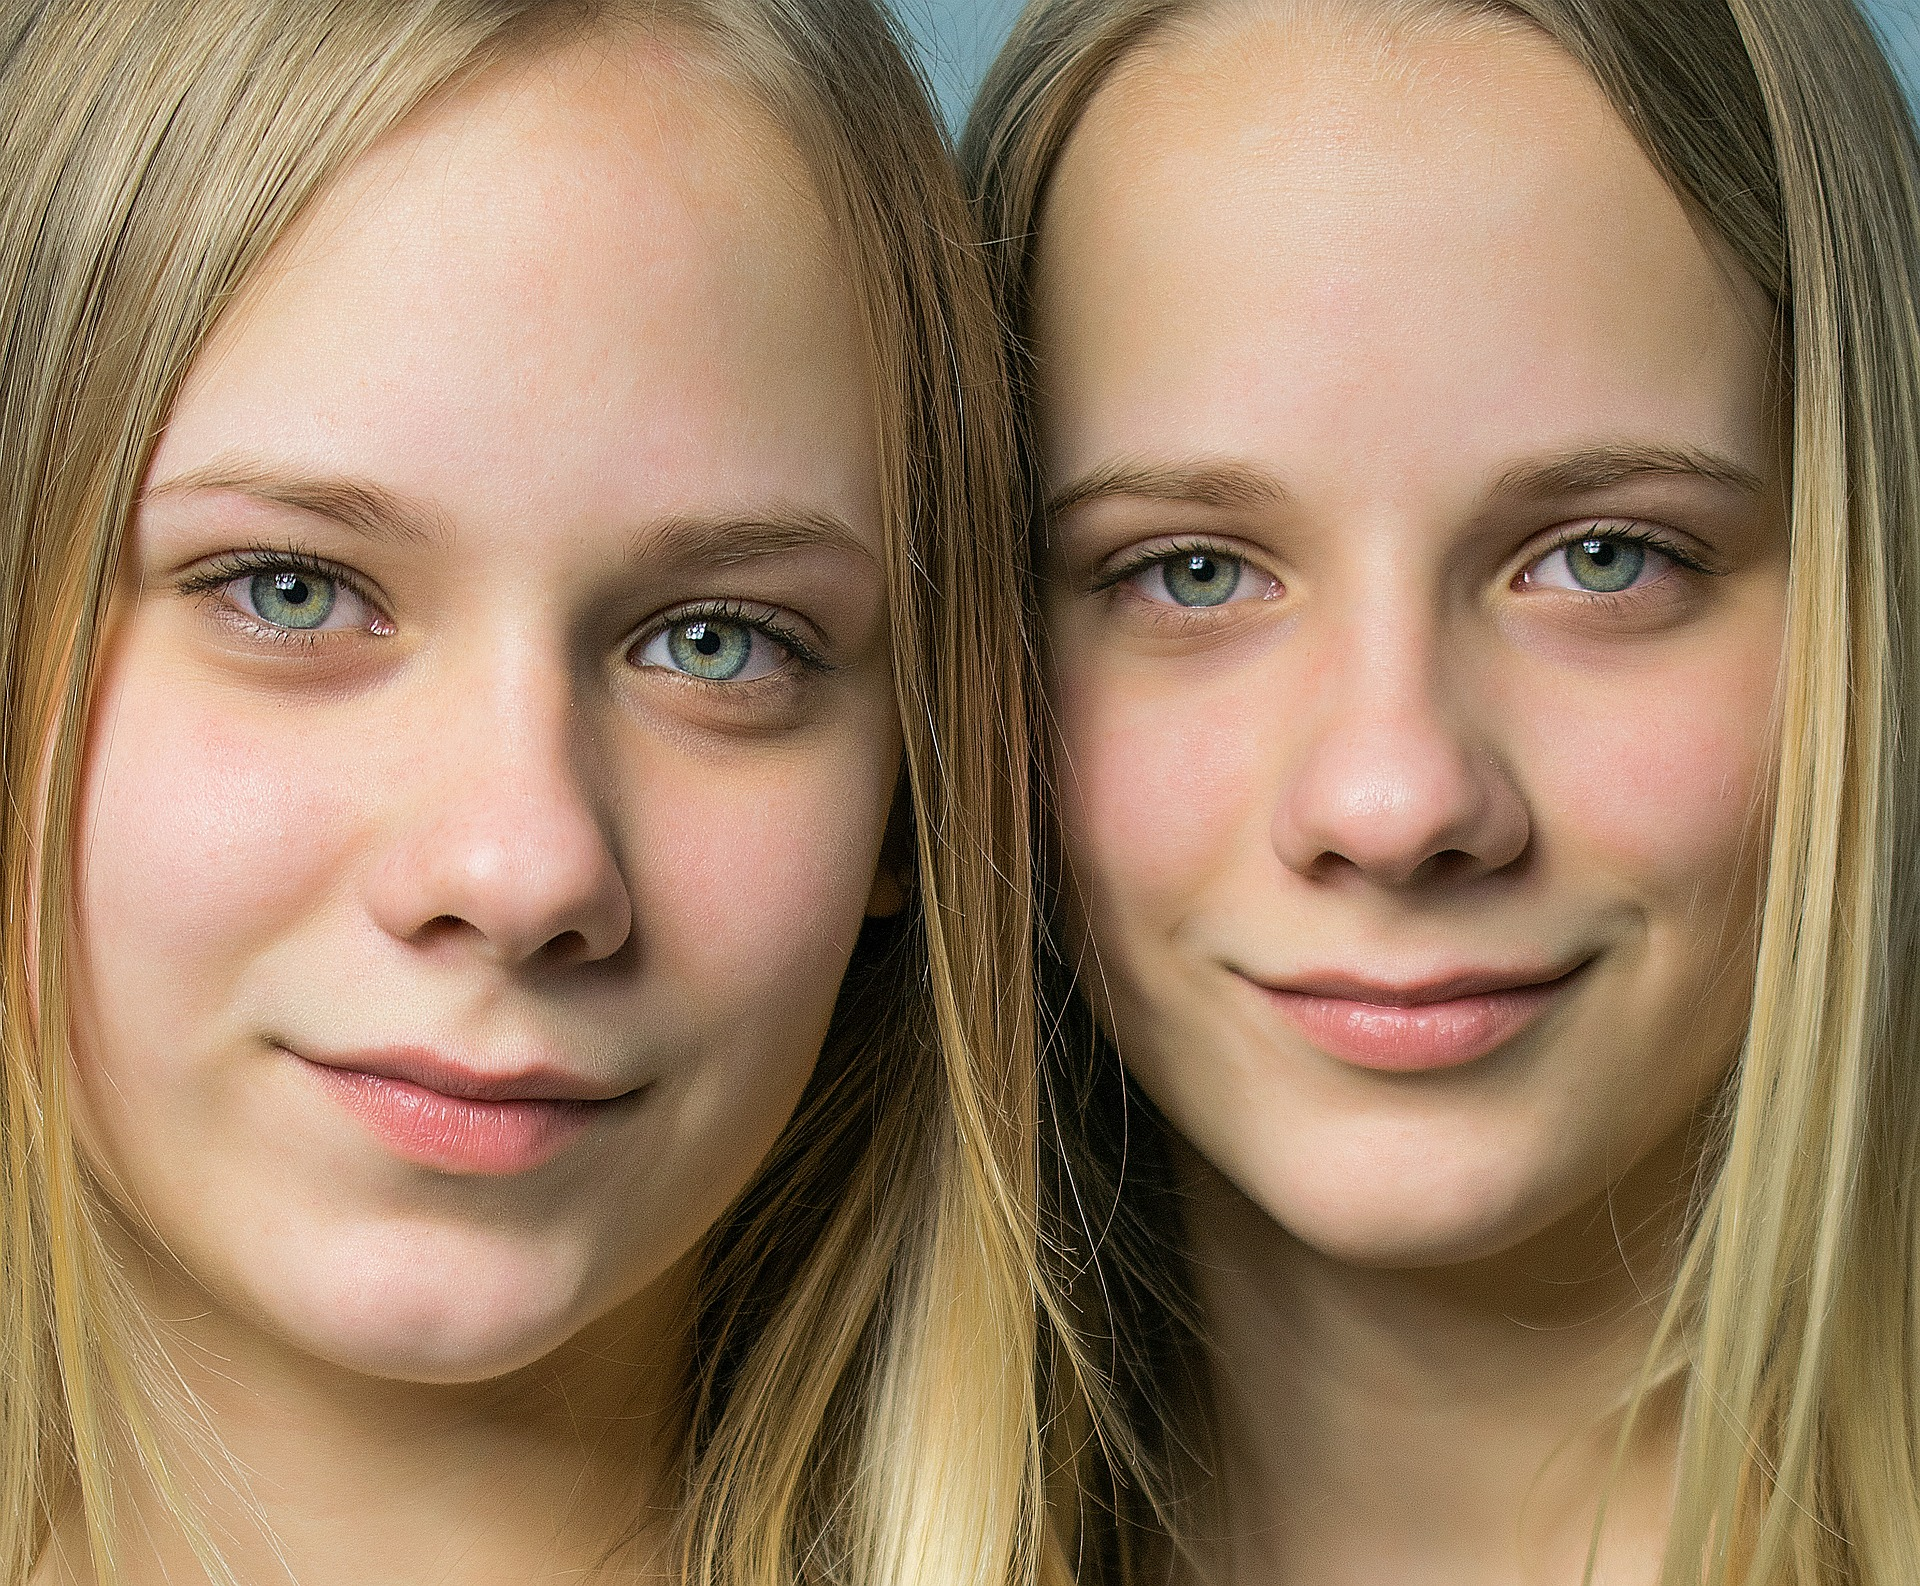 Is it True That Everyone Has a Twin?